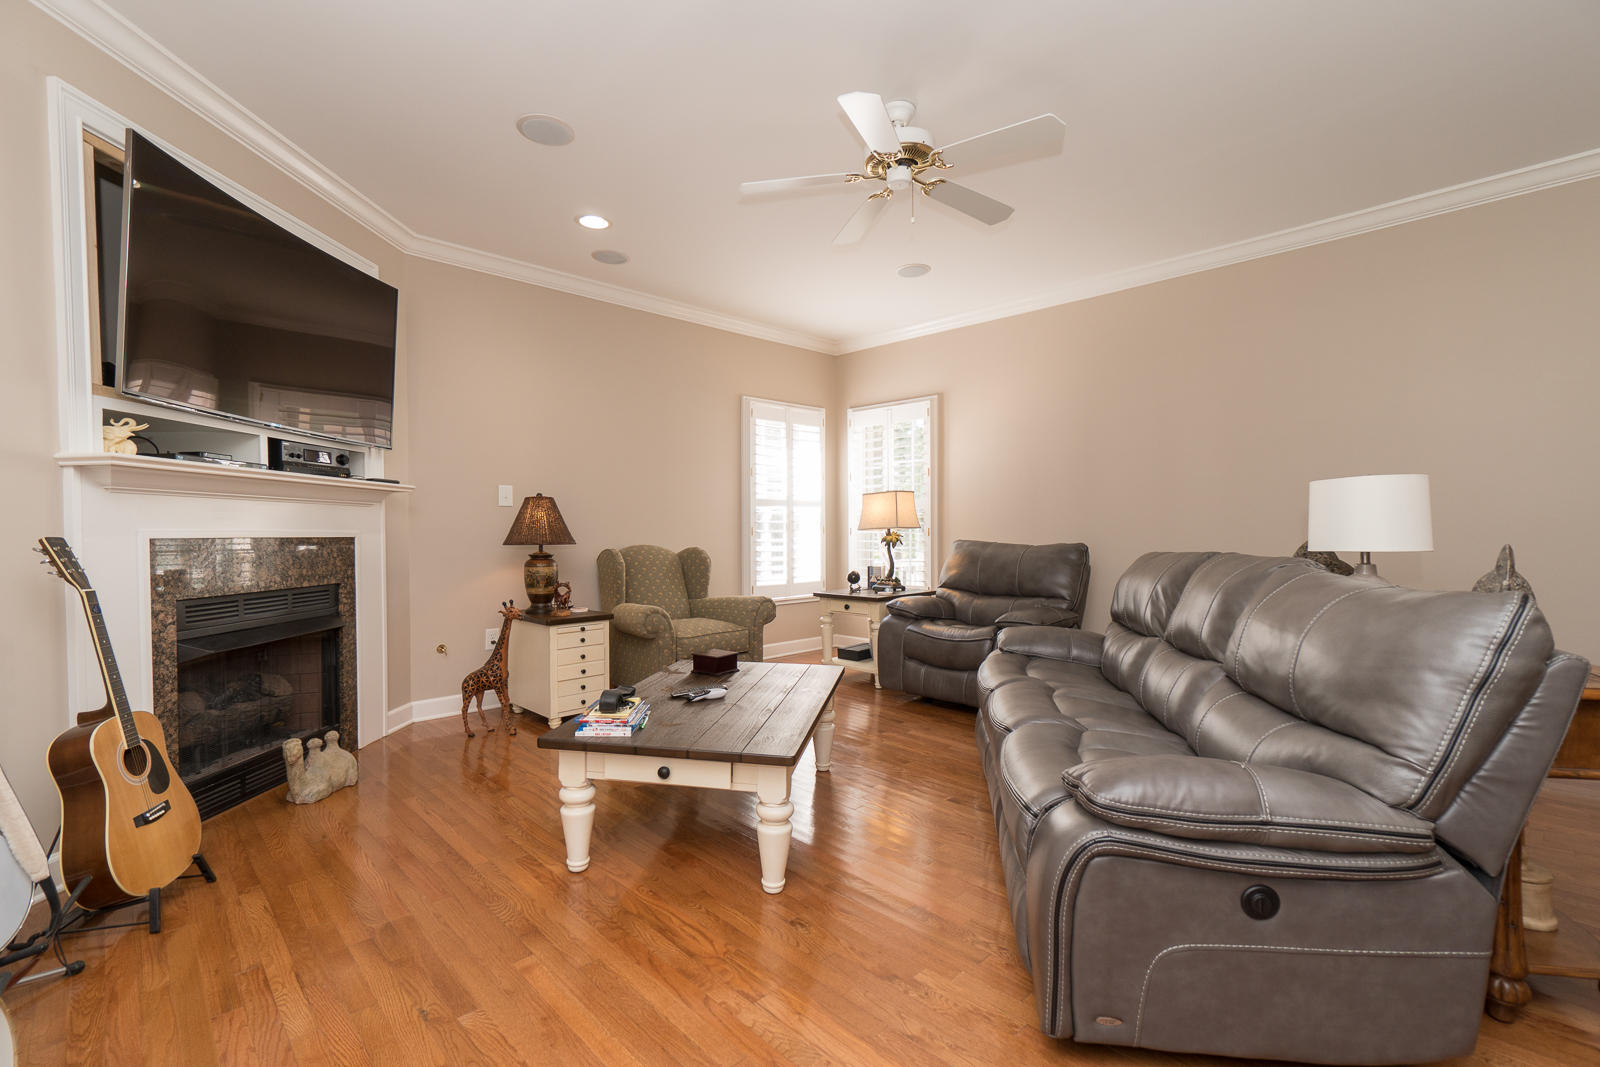 Ainsdale at Shadowmoss Plantation Homes For Sale - 233 Ainsdale, Charleston, SC - 7